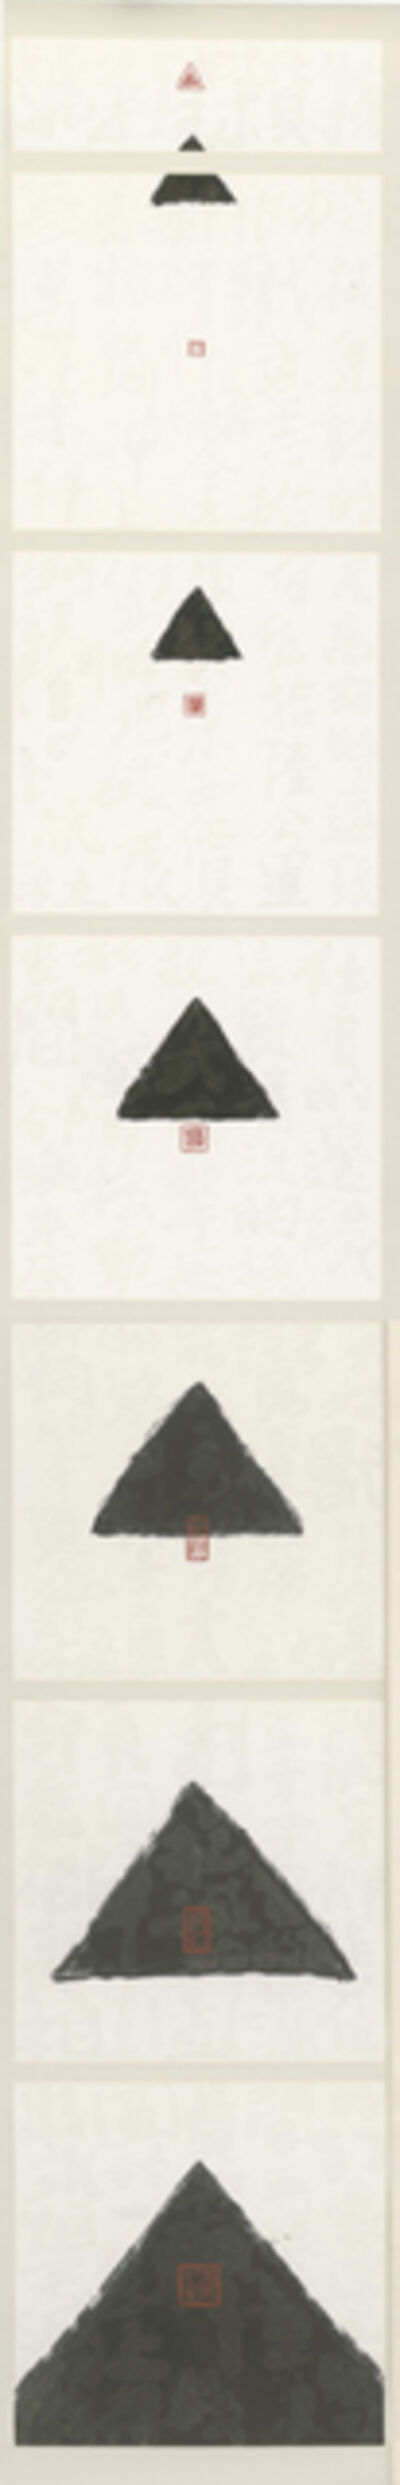 Fung Mingchip 馮明秋, '物质变化 连裱长轴 Zoom in/out Series Mounting', 2001